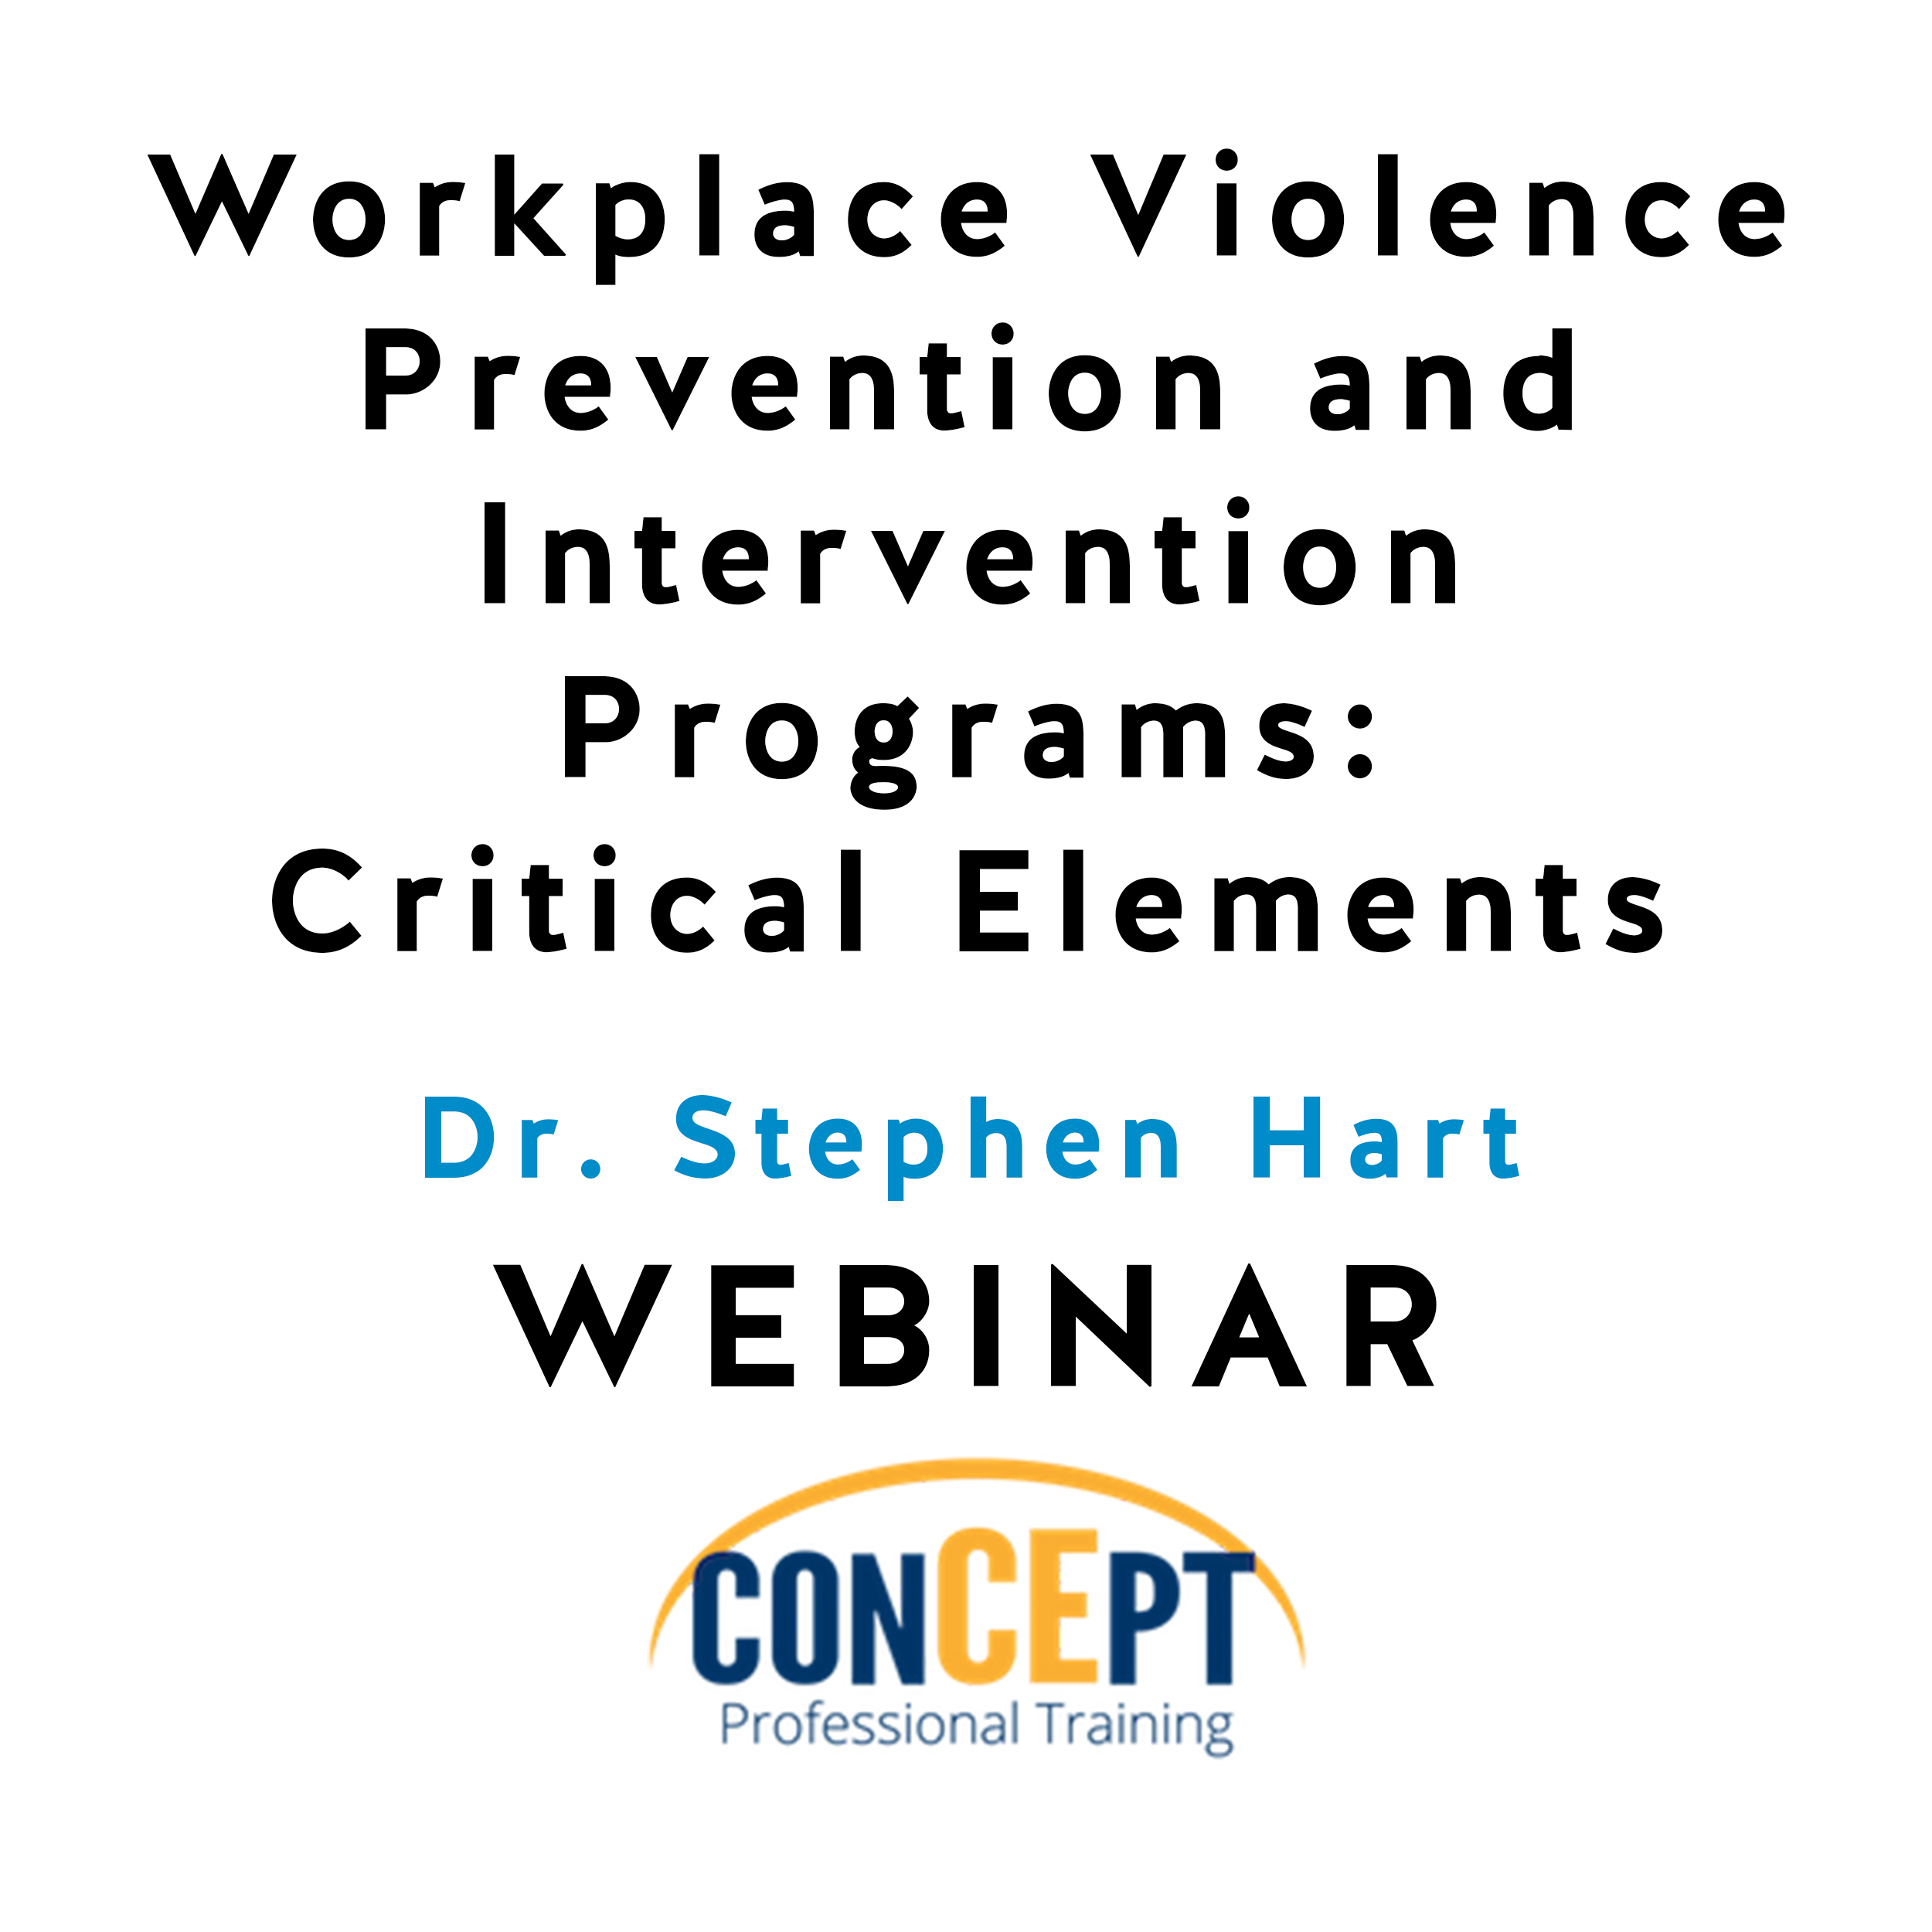 Workplace Violence Prevention And Intervention Programs